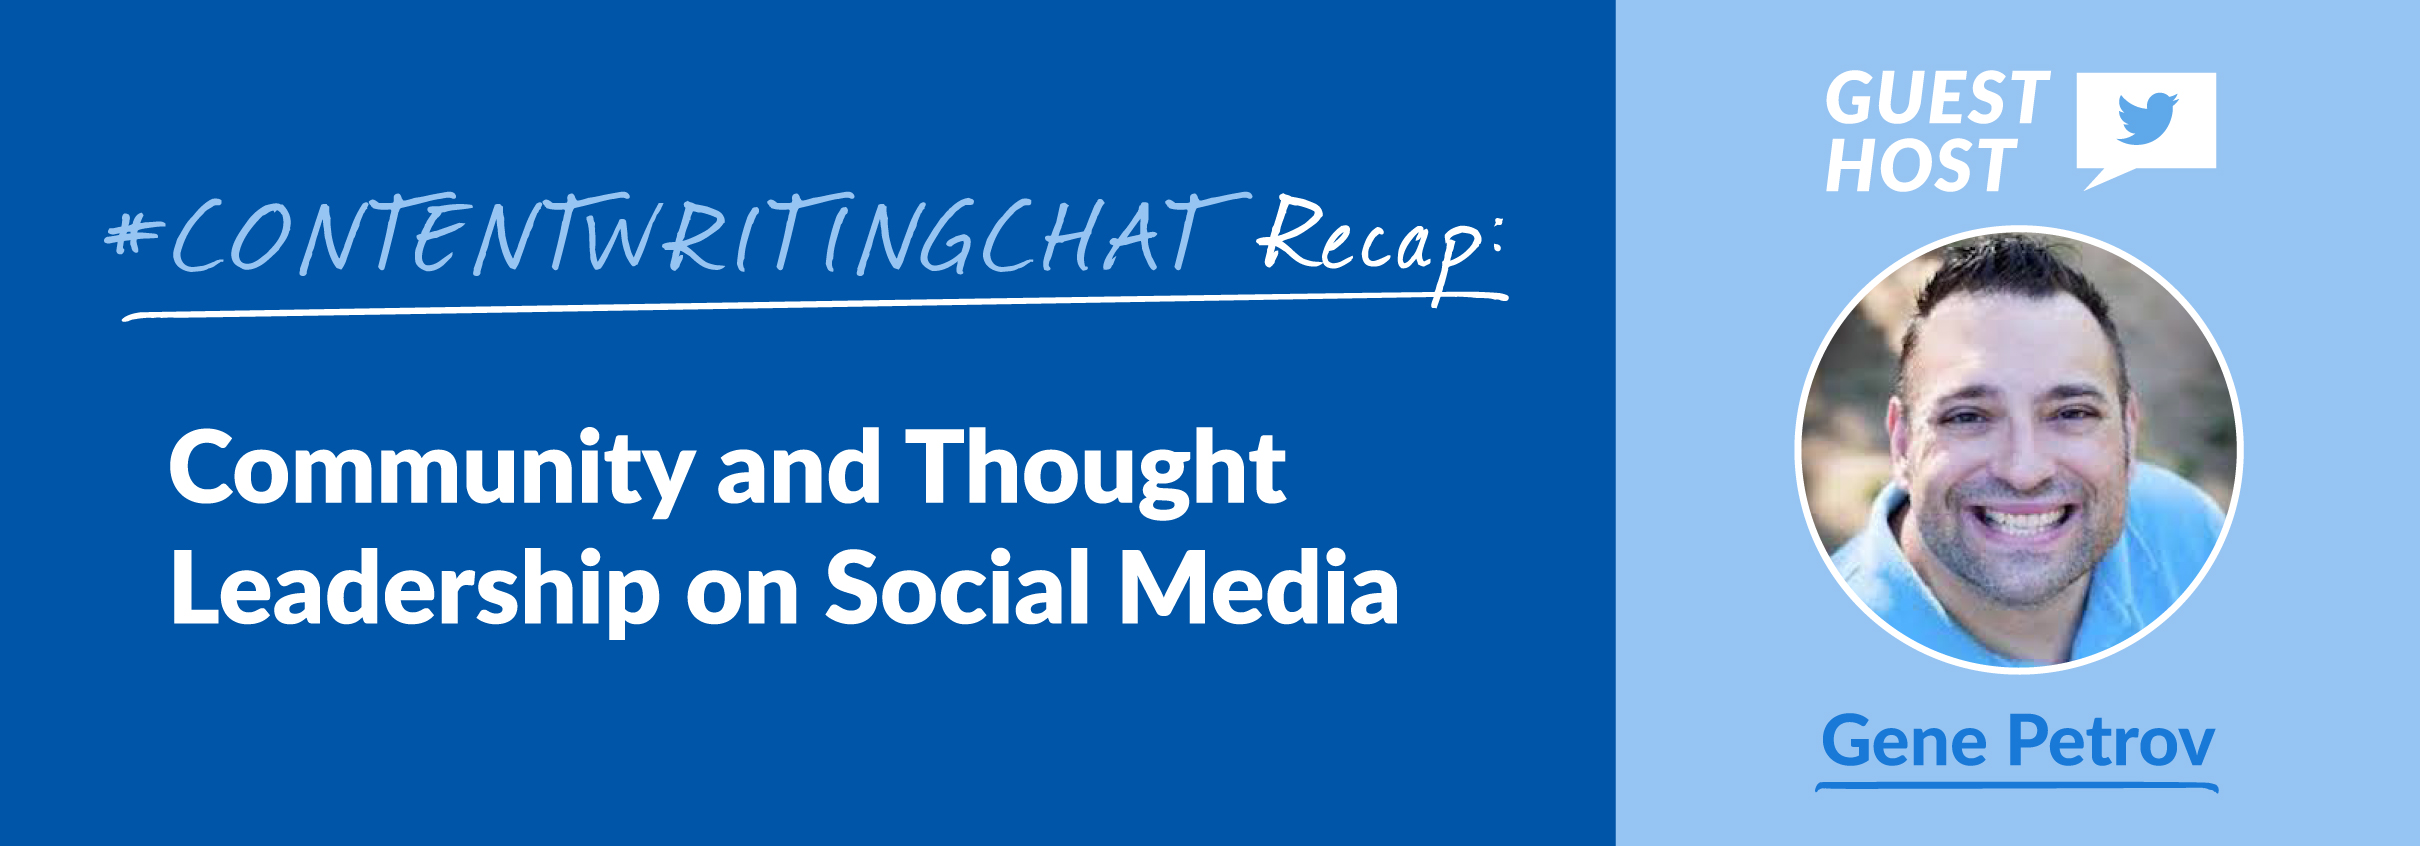 #ContentWritingChat Recap: Community and Thought Leadership on Social Media with Gene Petrov